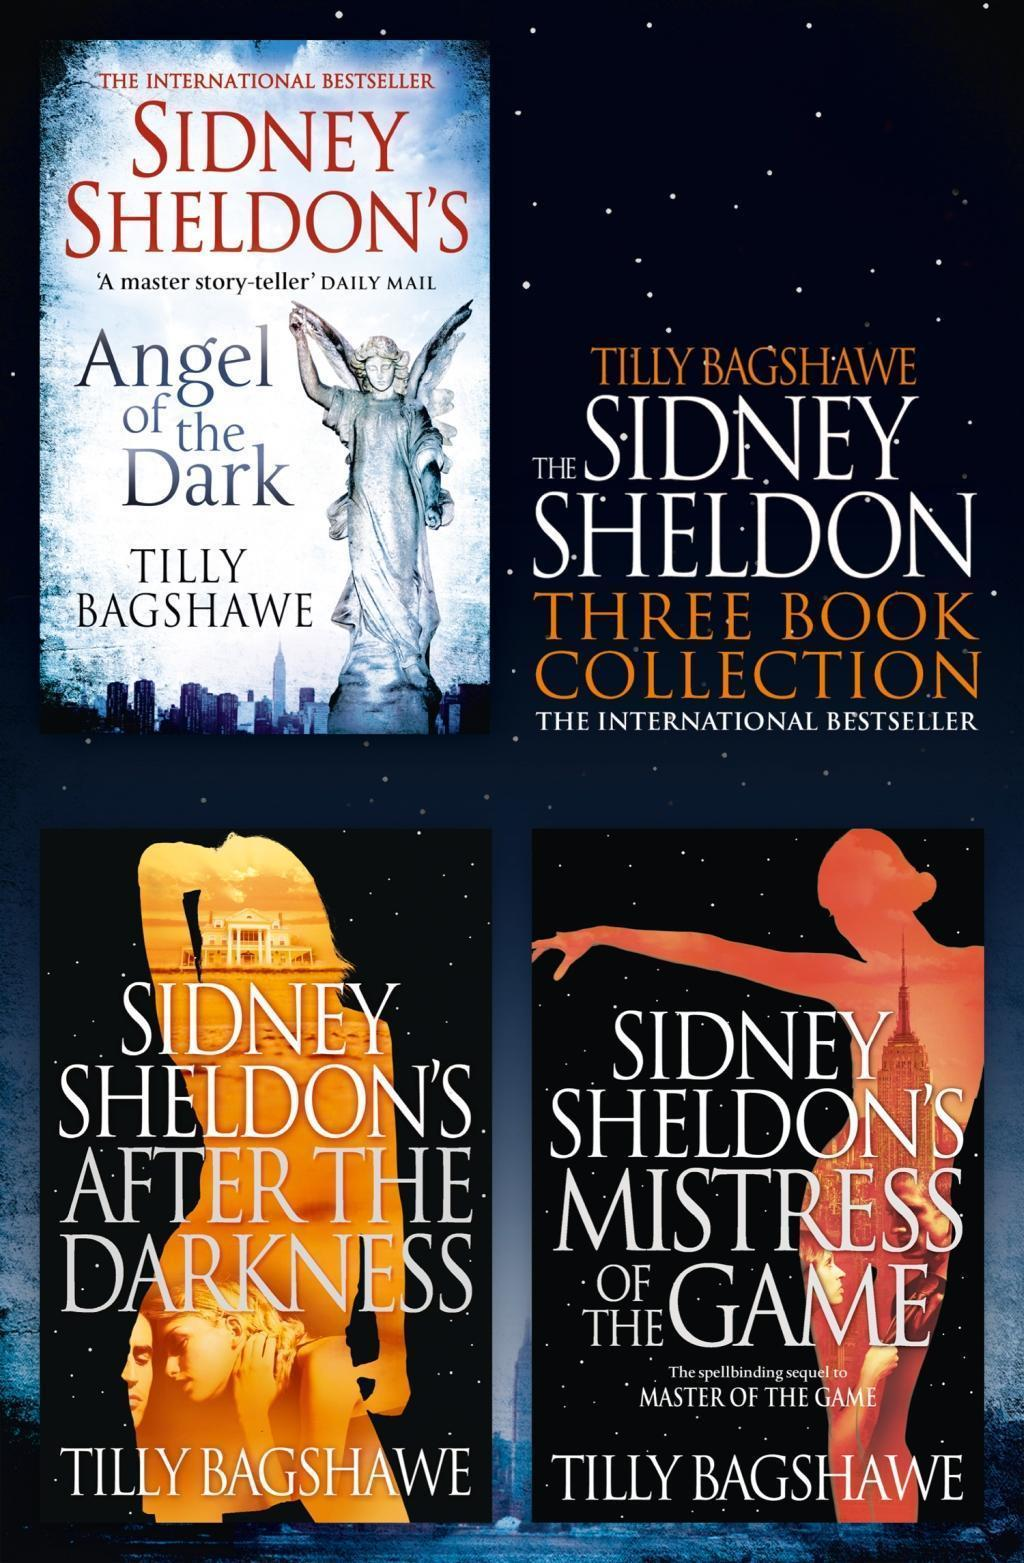 Sidney Sheldon & Tilly Bagshawe 3-Book Collection: After the Darkness, Mistress of the Game, Angel of the Dark